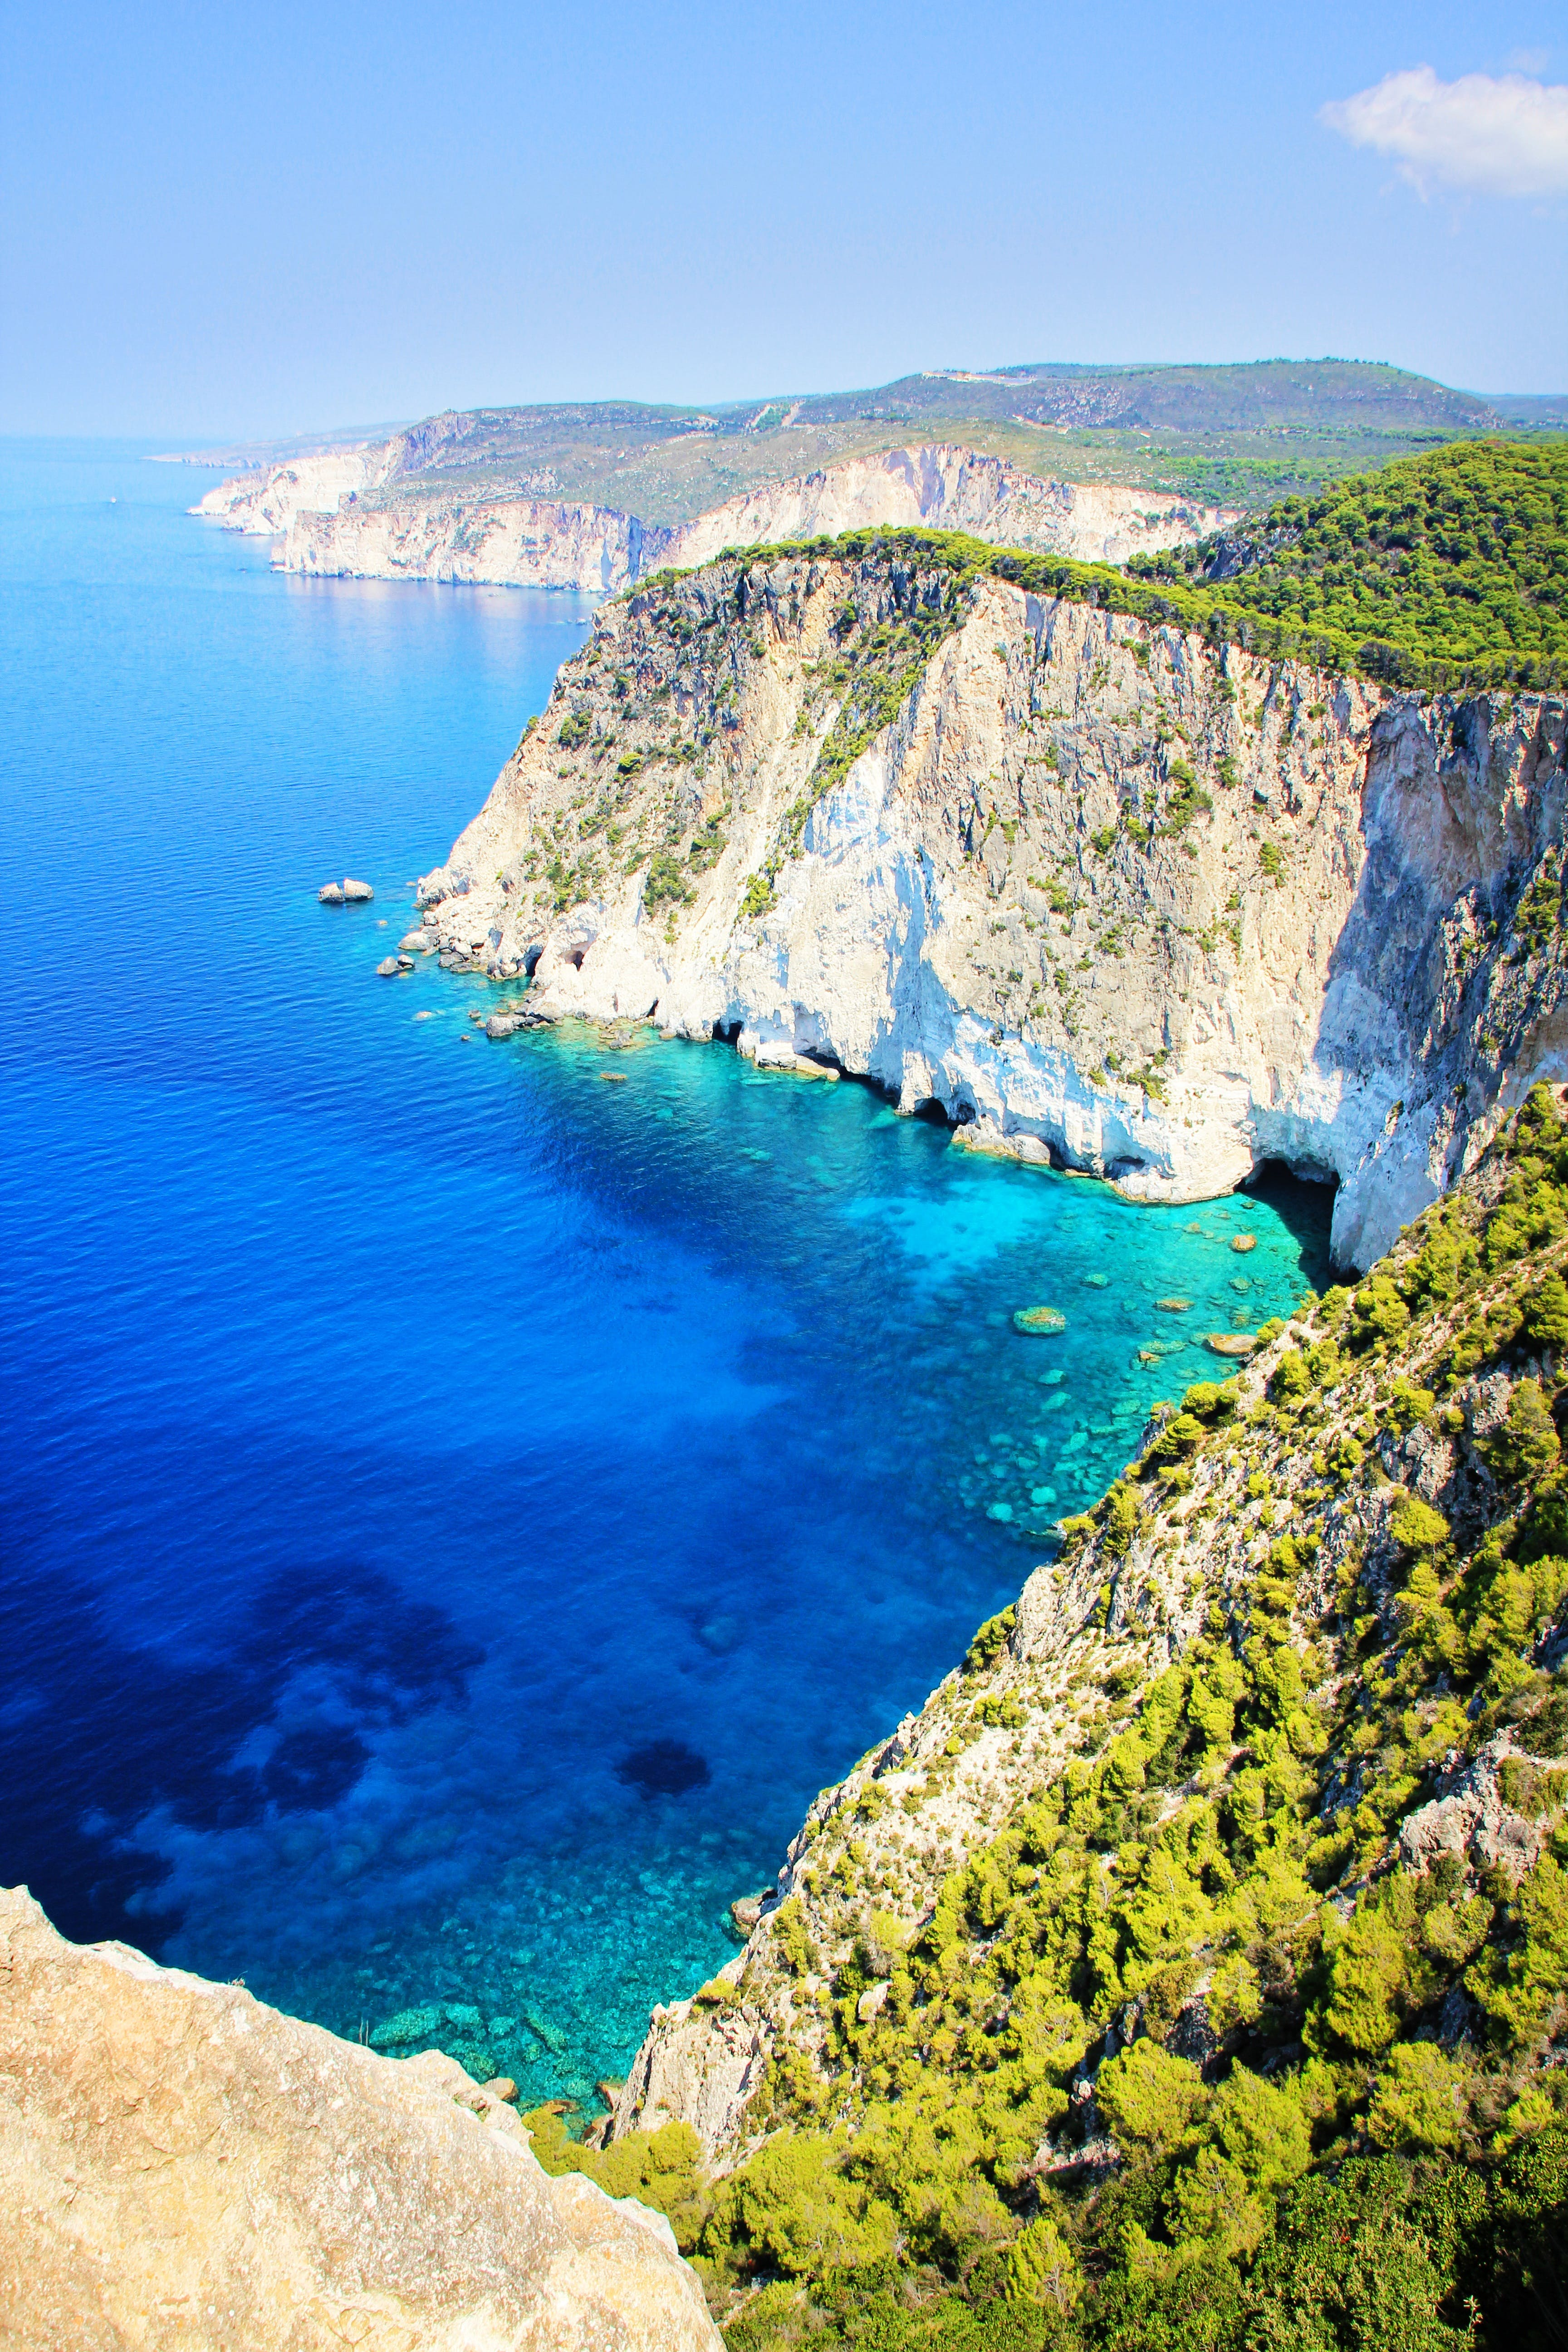 Blue Deep Body of Water Near Cliff With Green Trees Under Blue Sky